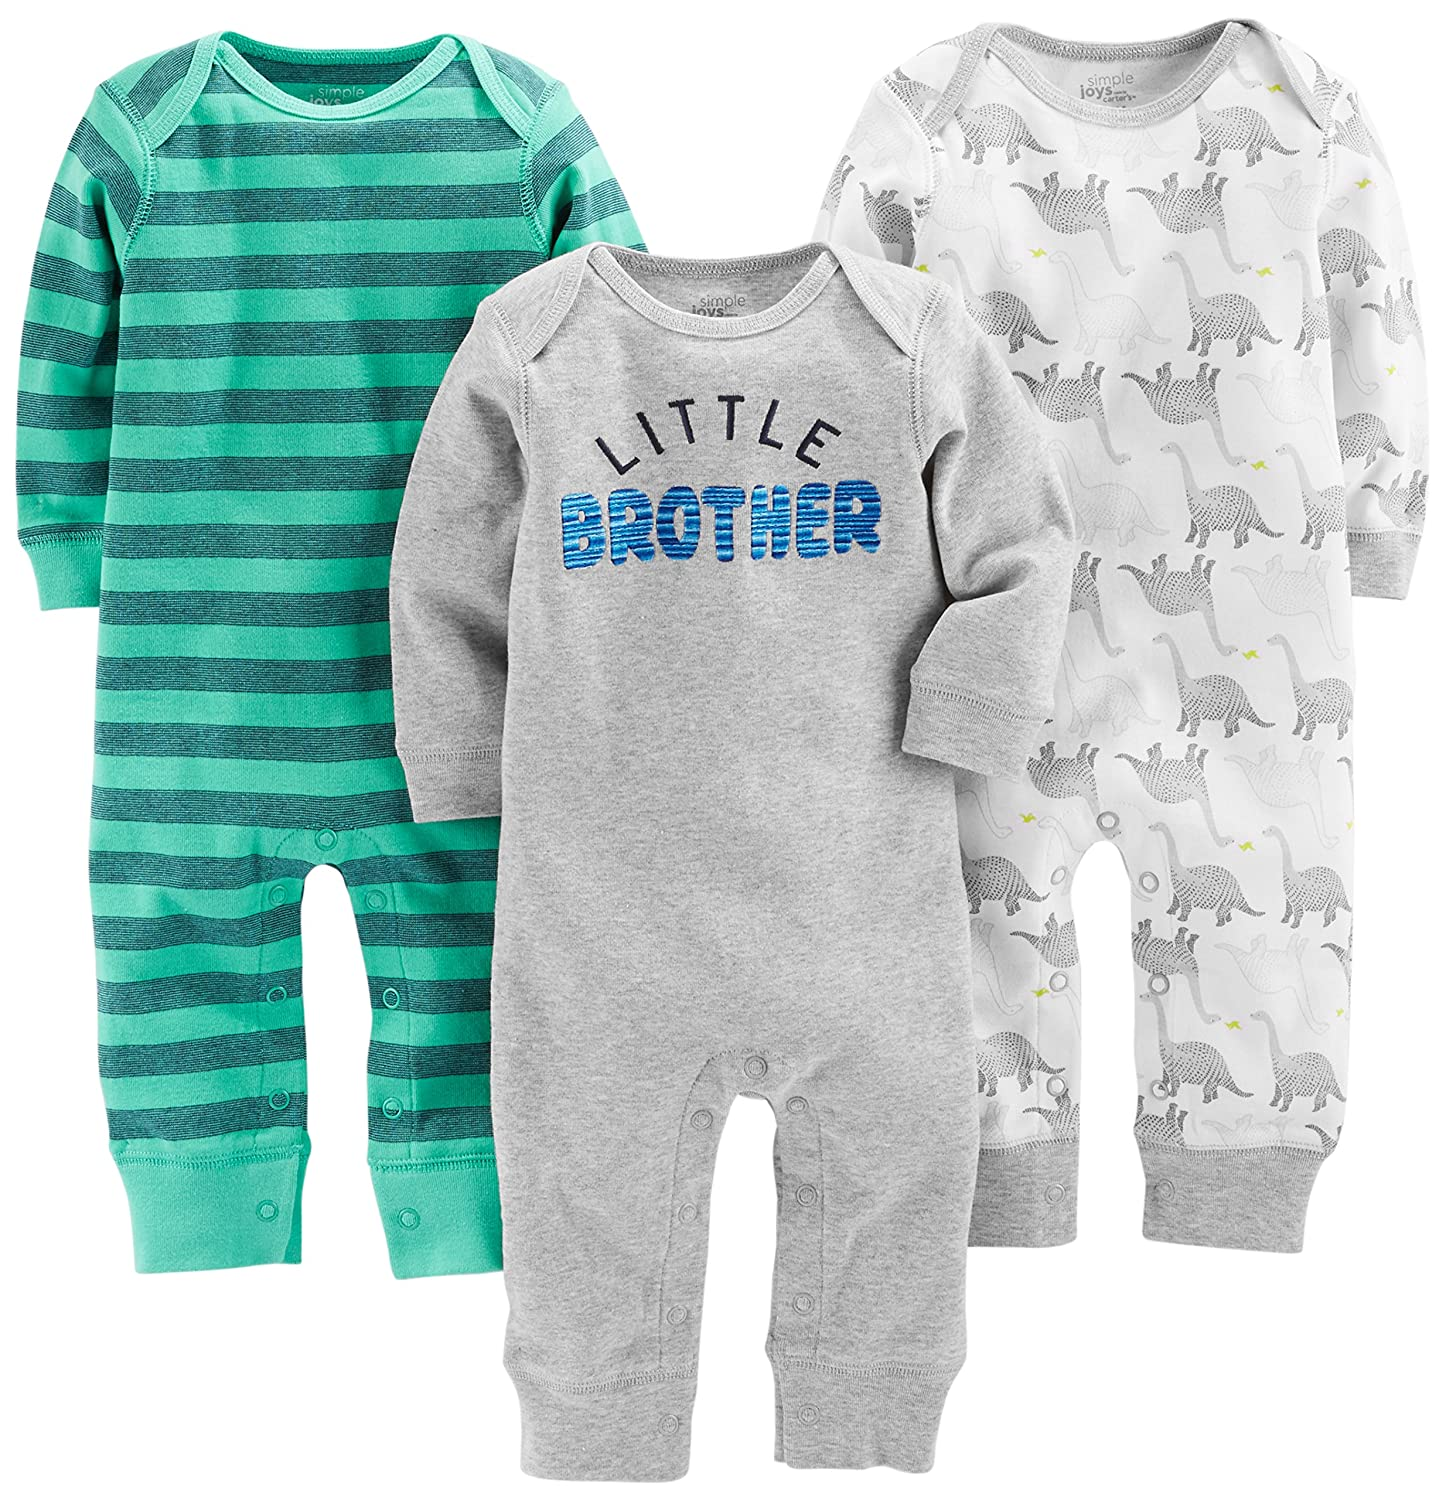 I Solemnly Swear Im Up To No Good Funny Baby Infants Babygrow Romper Jumpsuit